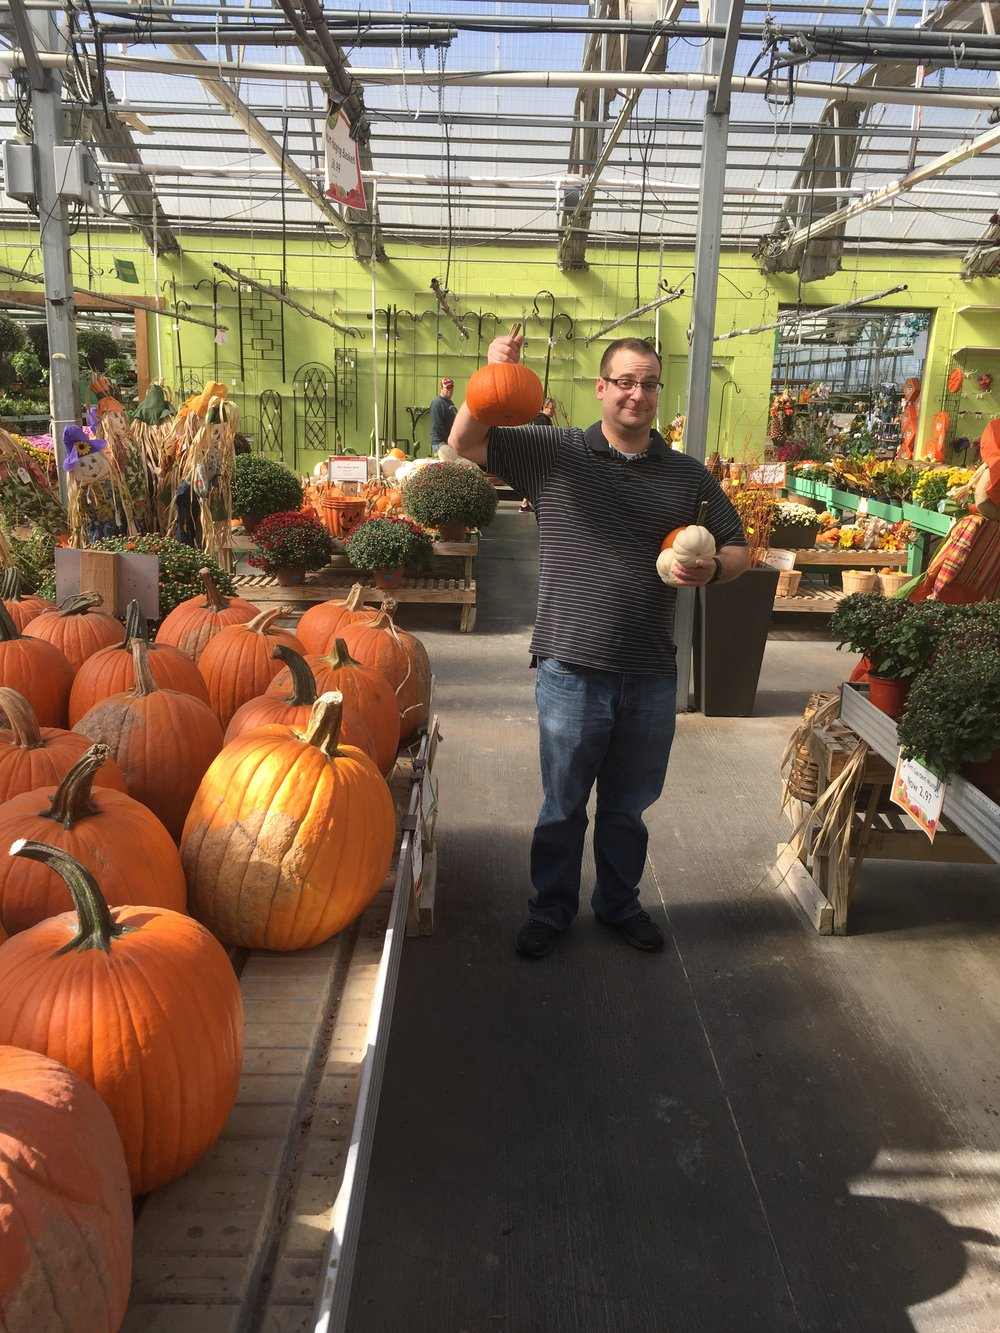 Steve pumpkin shopping.JPG